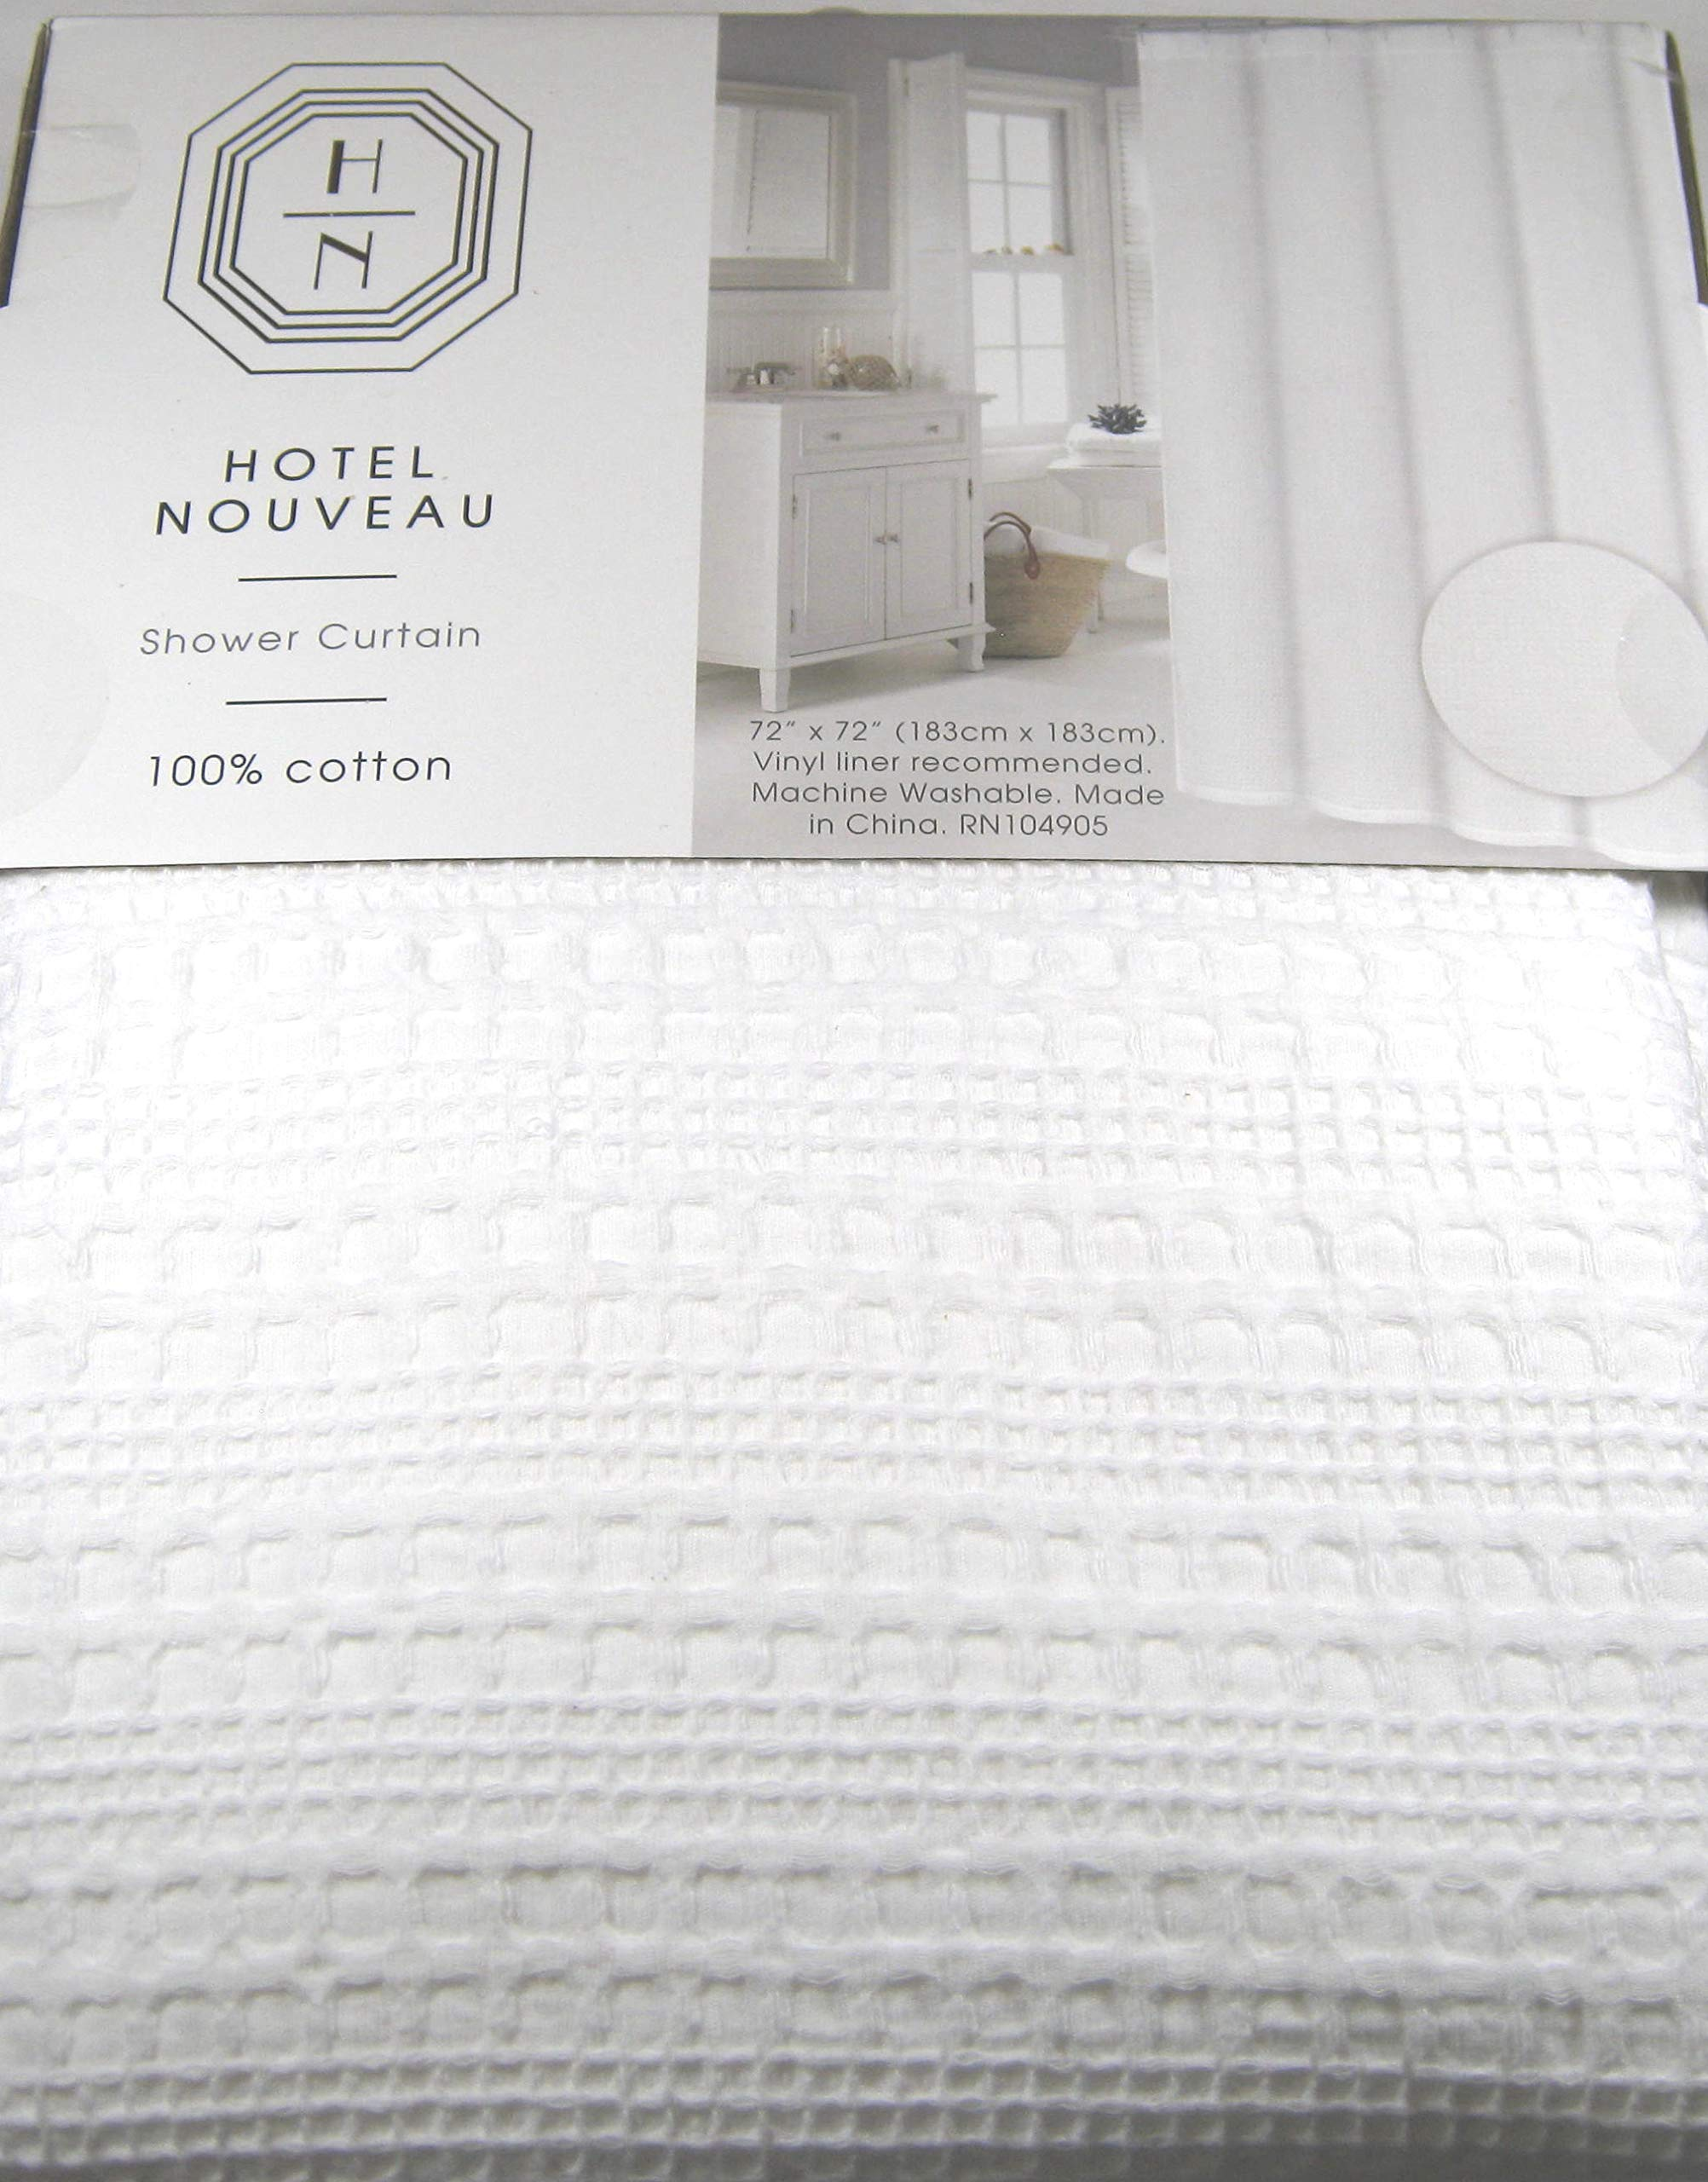 Hotel Premium Quality White Fabric Shower Curtain Textured Waffle Weave 100% Cotton 72'' x 72''